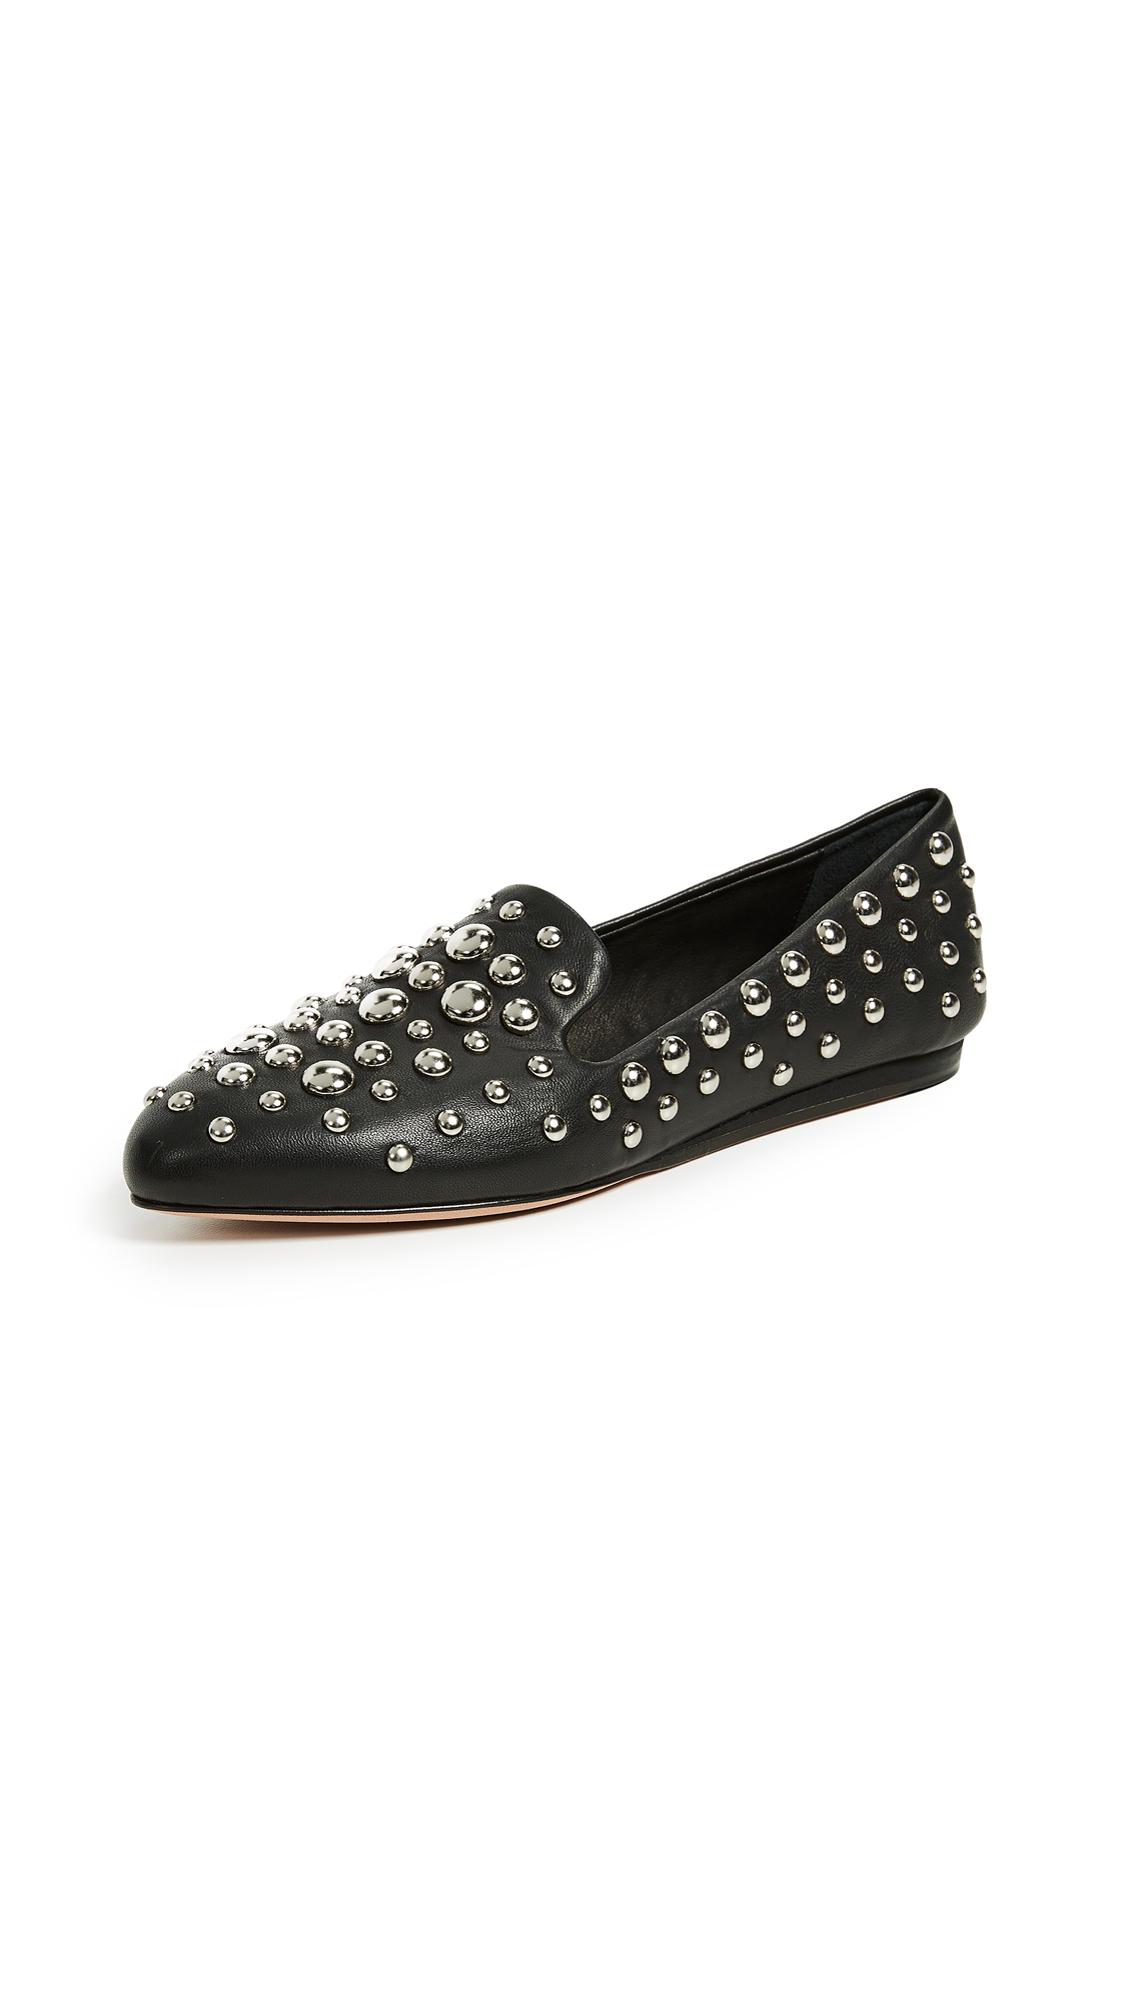 Veronica Beard Griffin Flats - Black/Silver